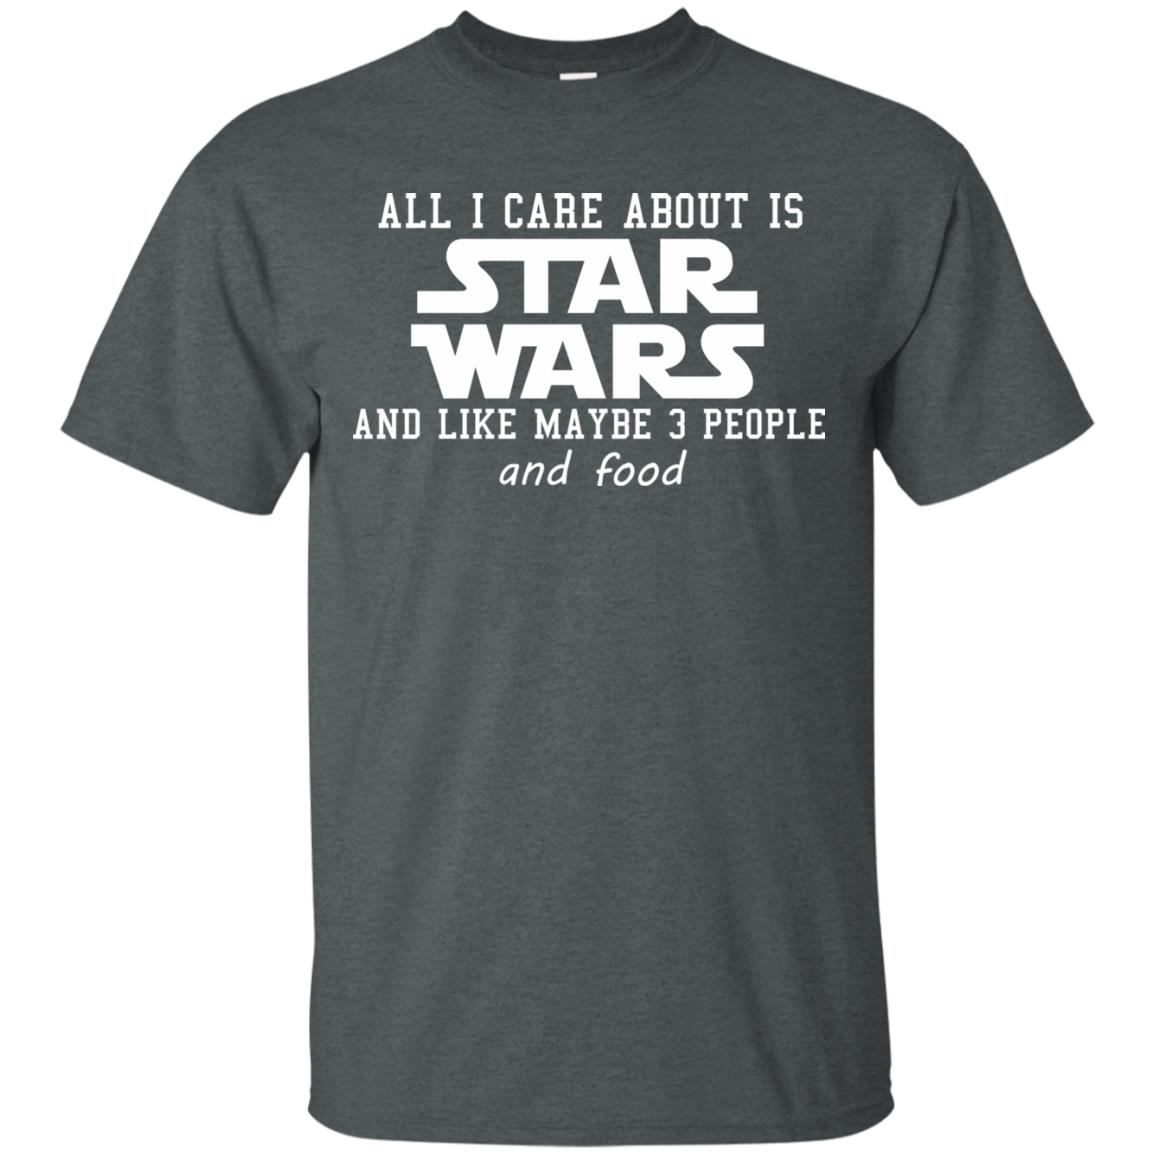 image 602 - All I care about is Star Wars & like maybe 3 people & food